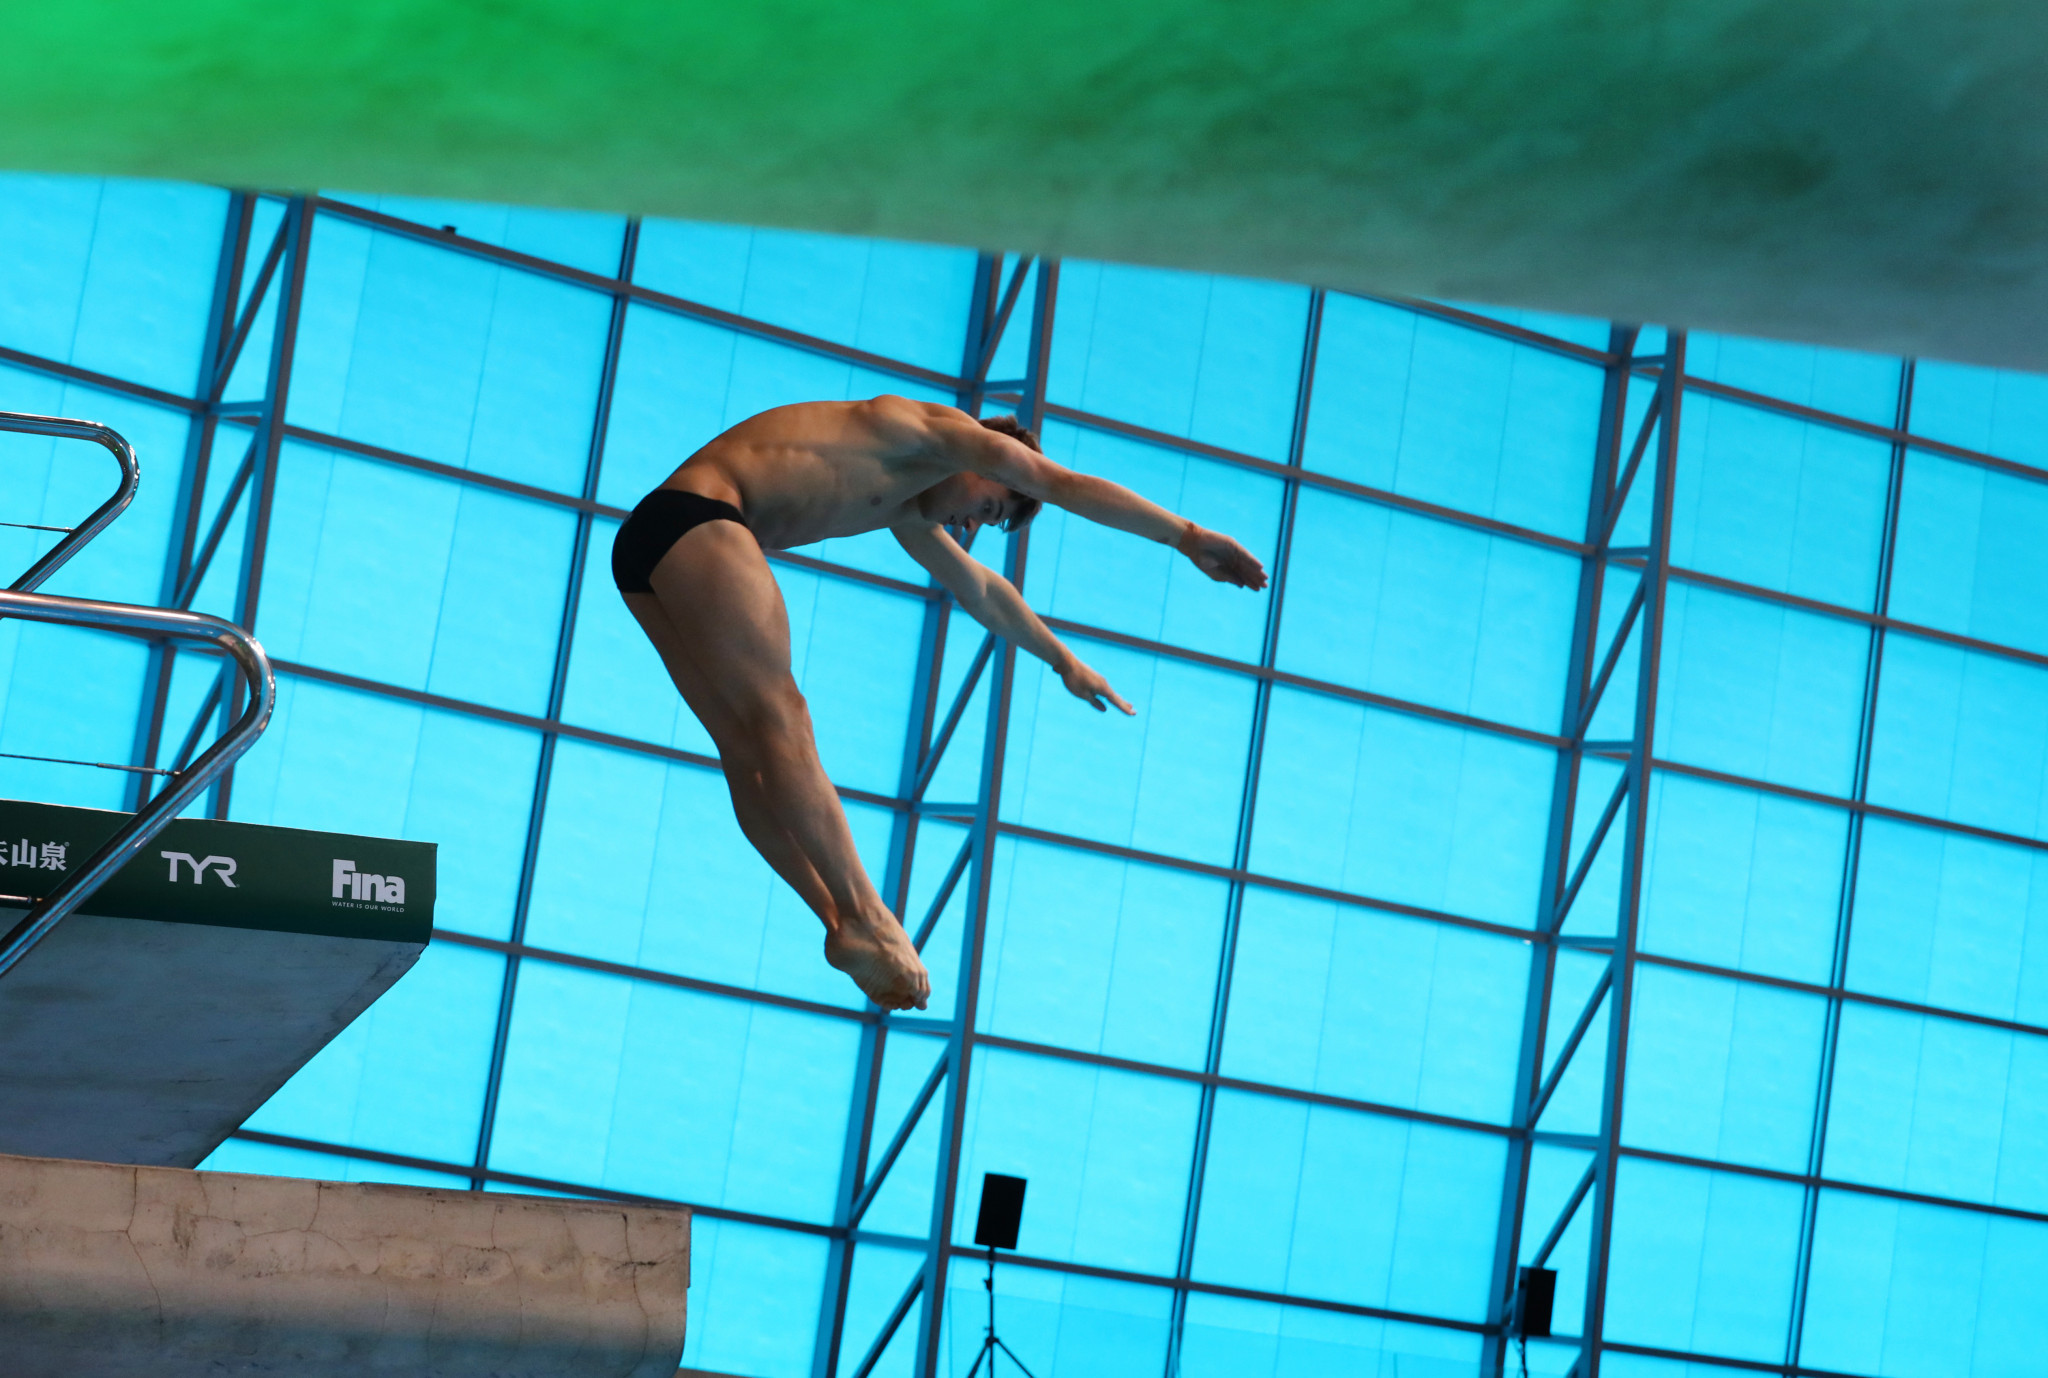 Montreal and London have rejoined the diving circuit ©Getty Images